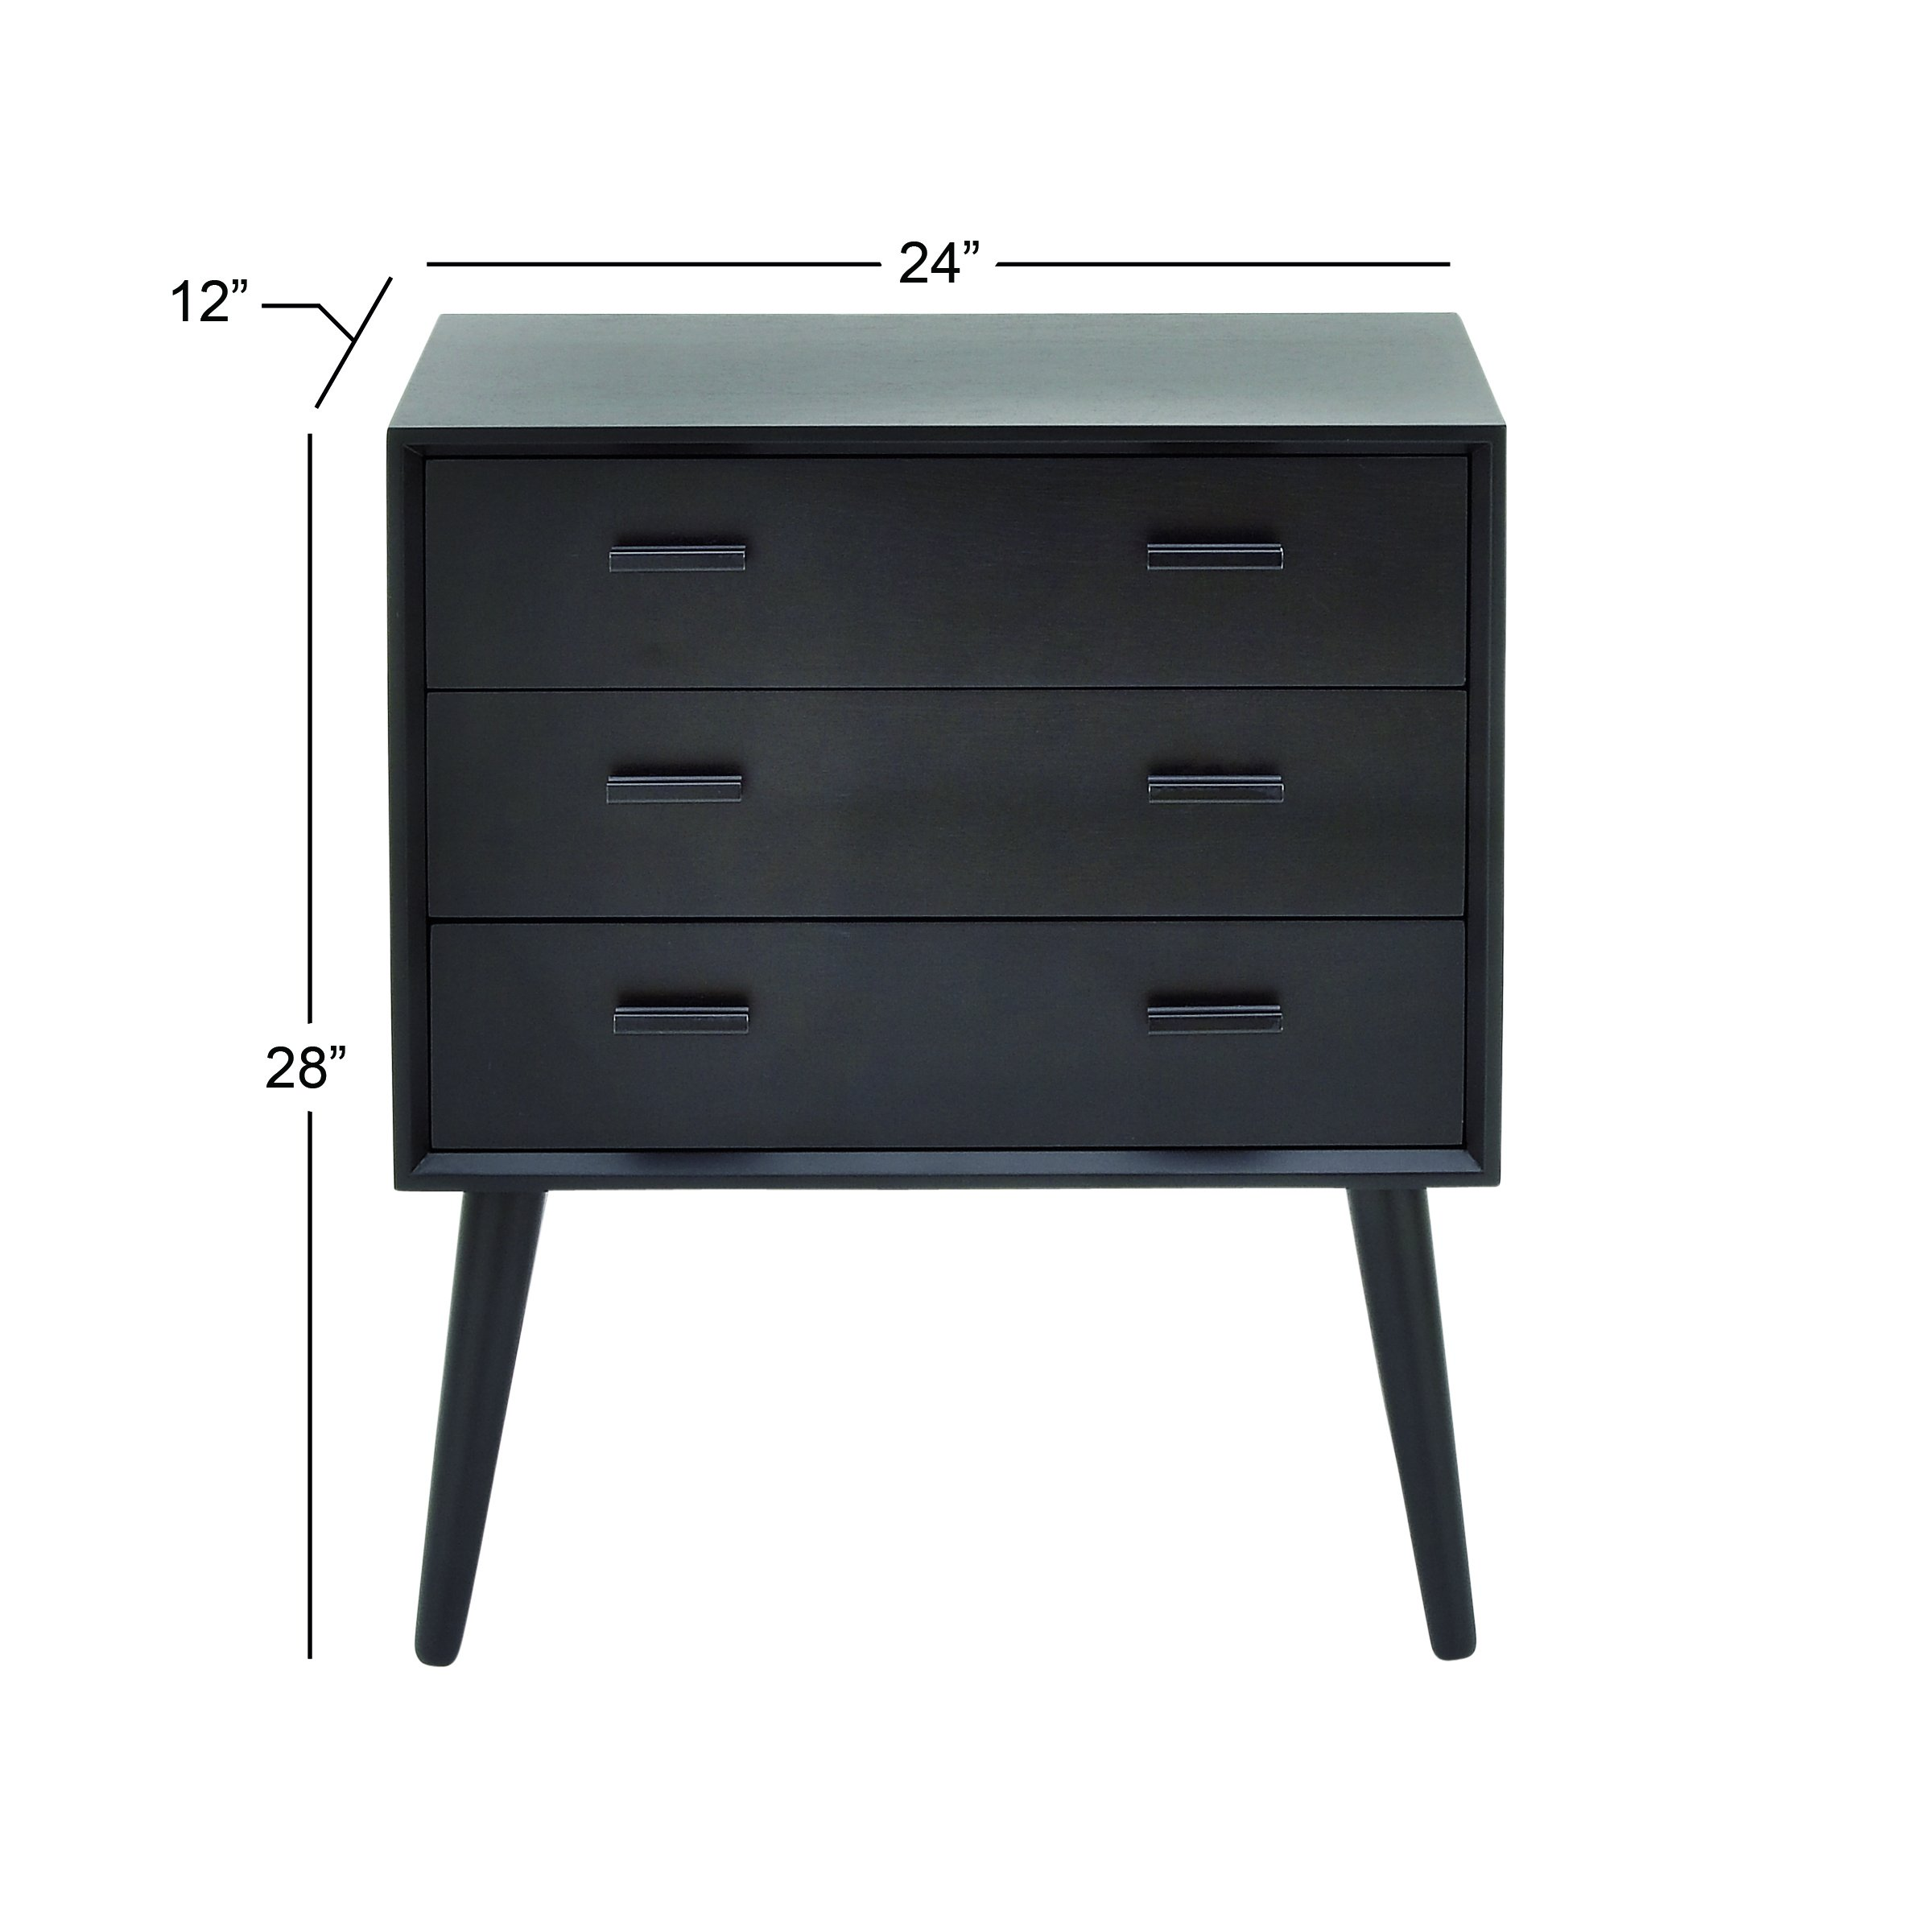 Benzara 96394 Wood Chest 24''W, 28''H by Benzara (Image #5)